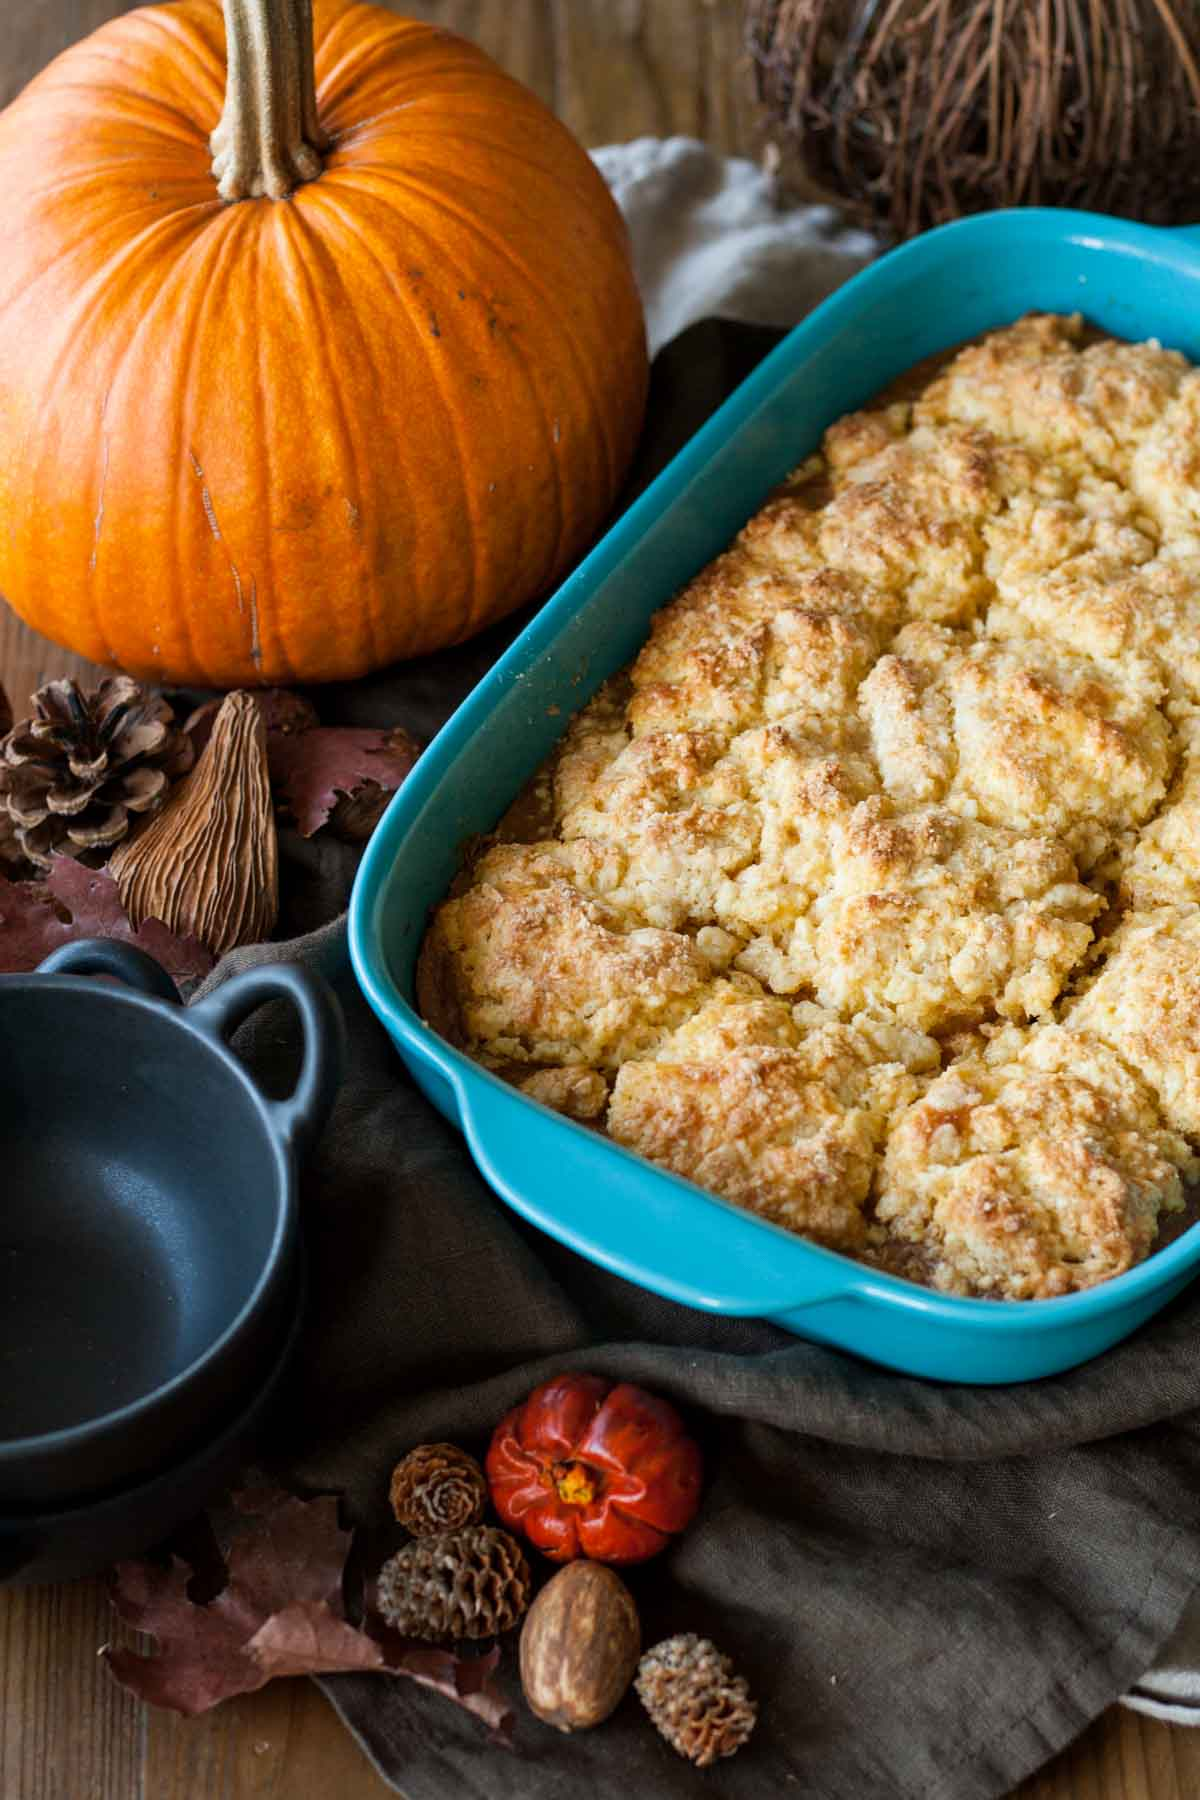 Pumpkin Cobbler | Check out these 15 Easy Pumpkin Desserts for Fall and Thanksgiving! From quick and easy desserts with simple ingredients like pumpkin pie and pumpkin cream cheese bread, to pumpkin cookies, cheesecake, and cake, you'll love this list of the best pumpkin desserts ever!  #pumpkindesserts #pumpkinrecipes #falldesserts #thanksgiving